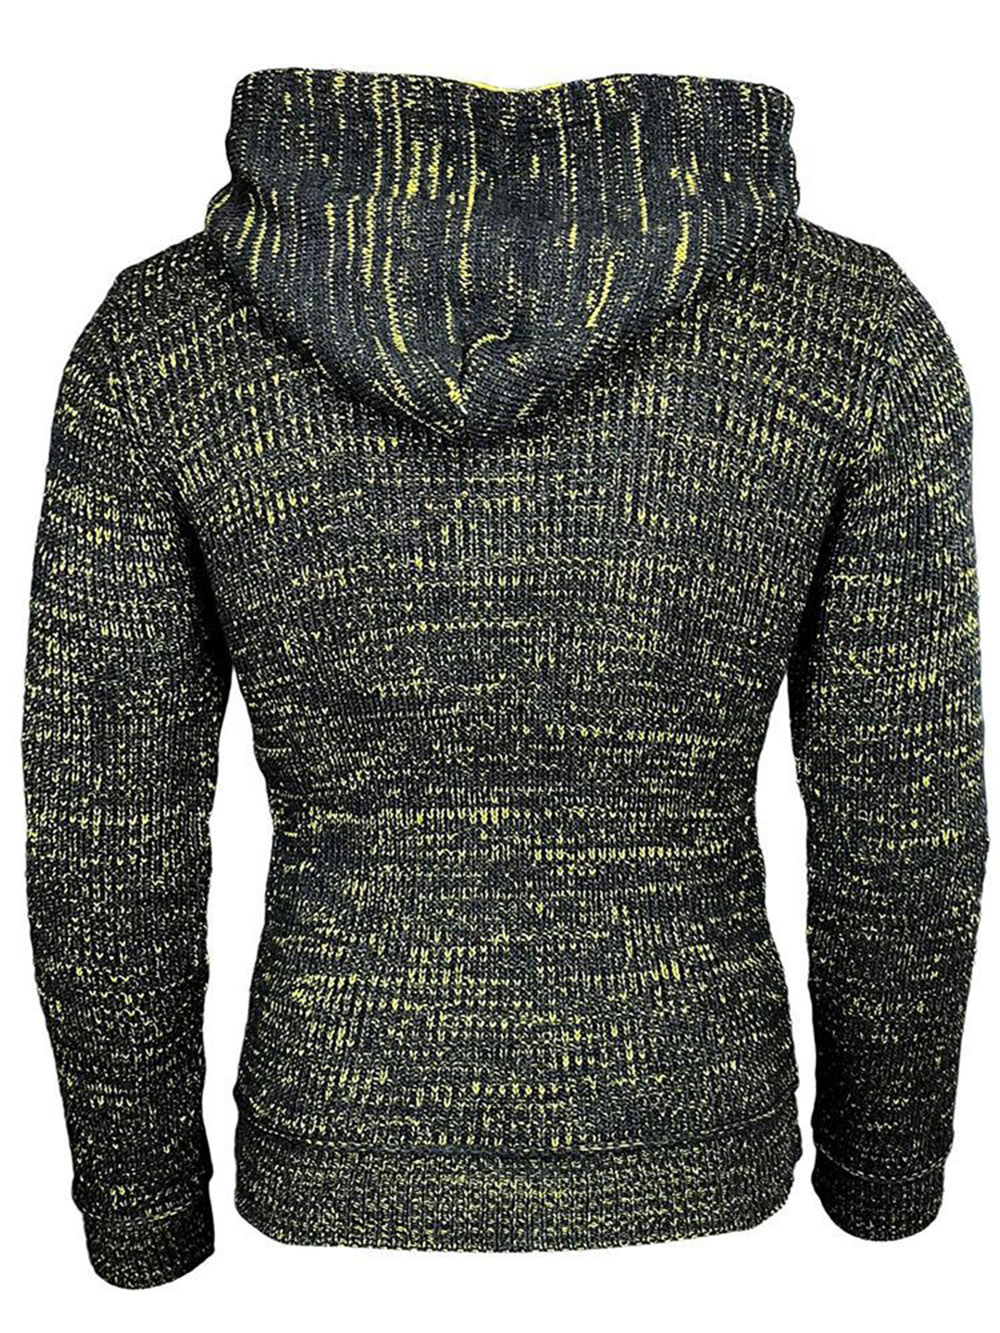 SY0002 Autumn and Winter Mixed Color Long Sleeve Men's Sweater - Multi-B XL